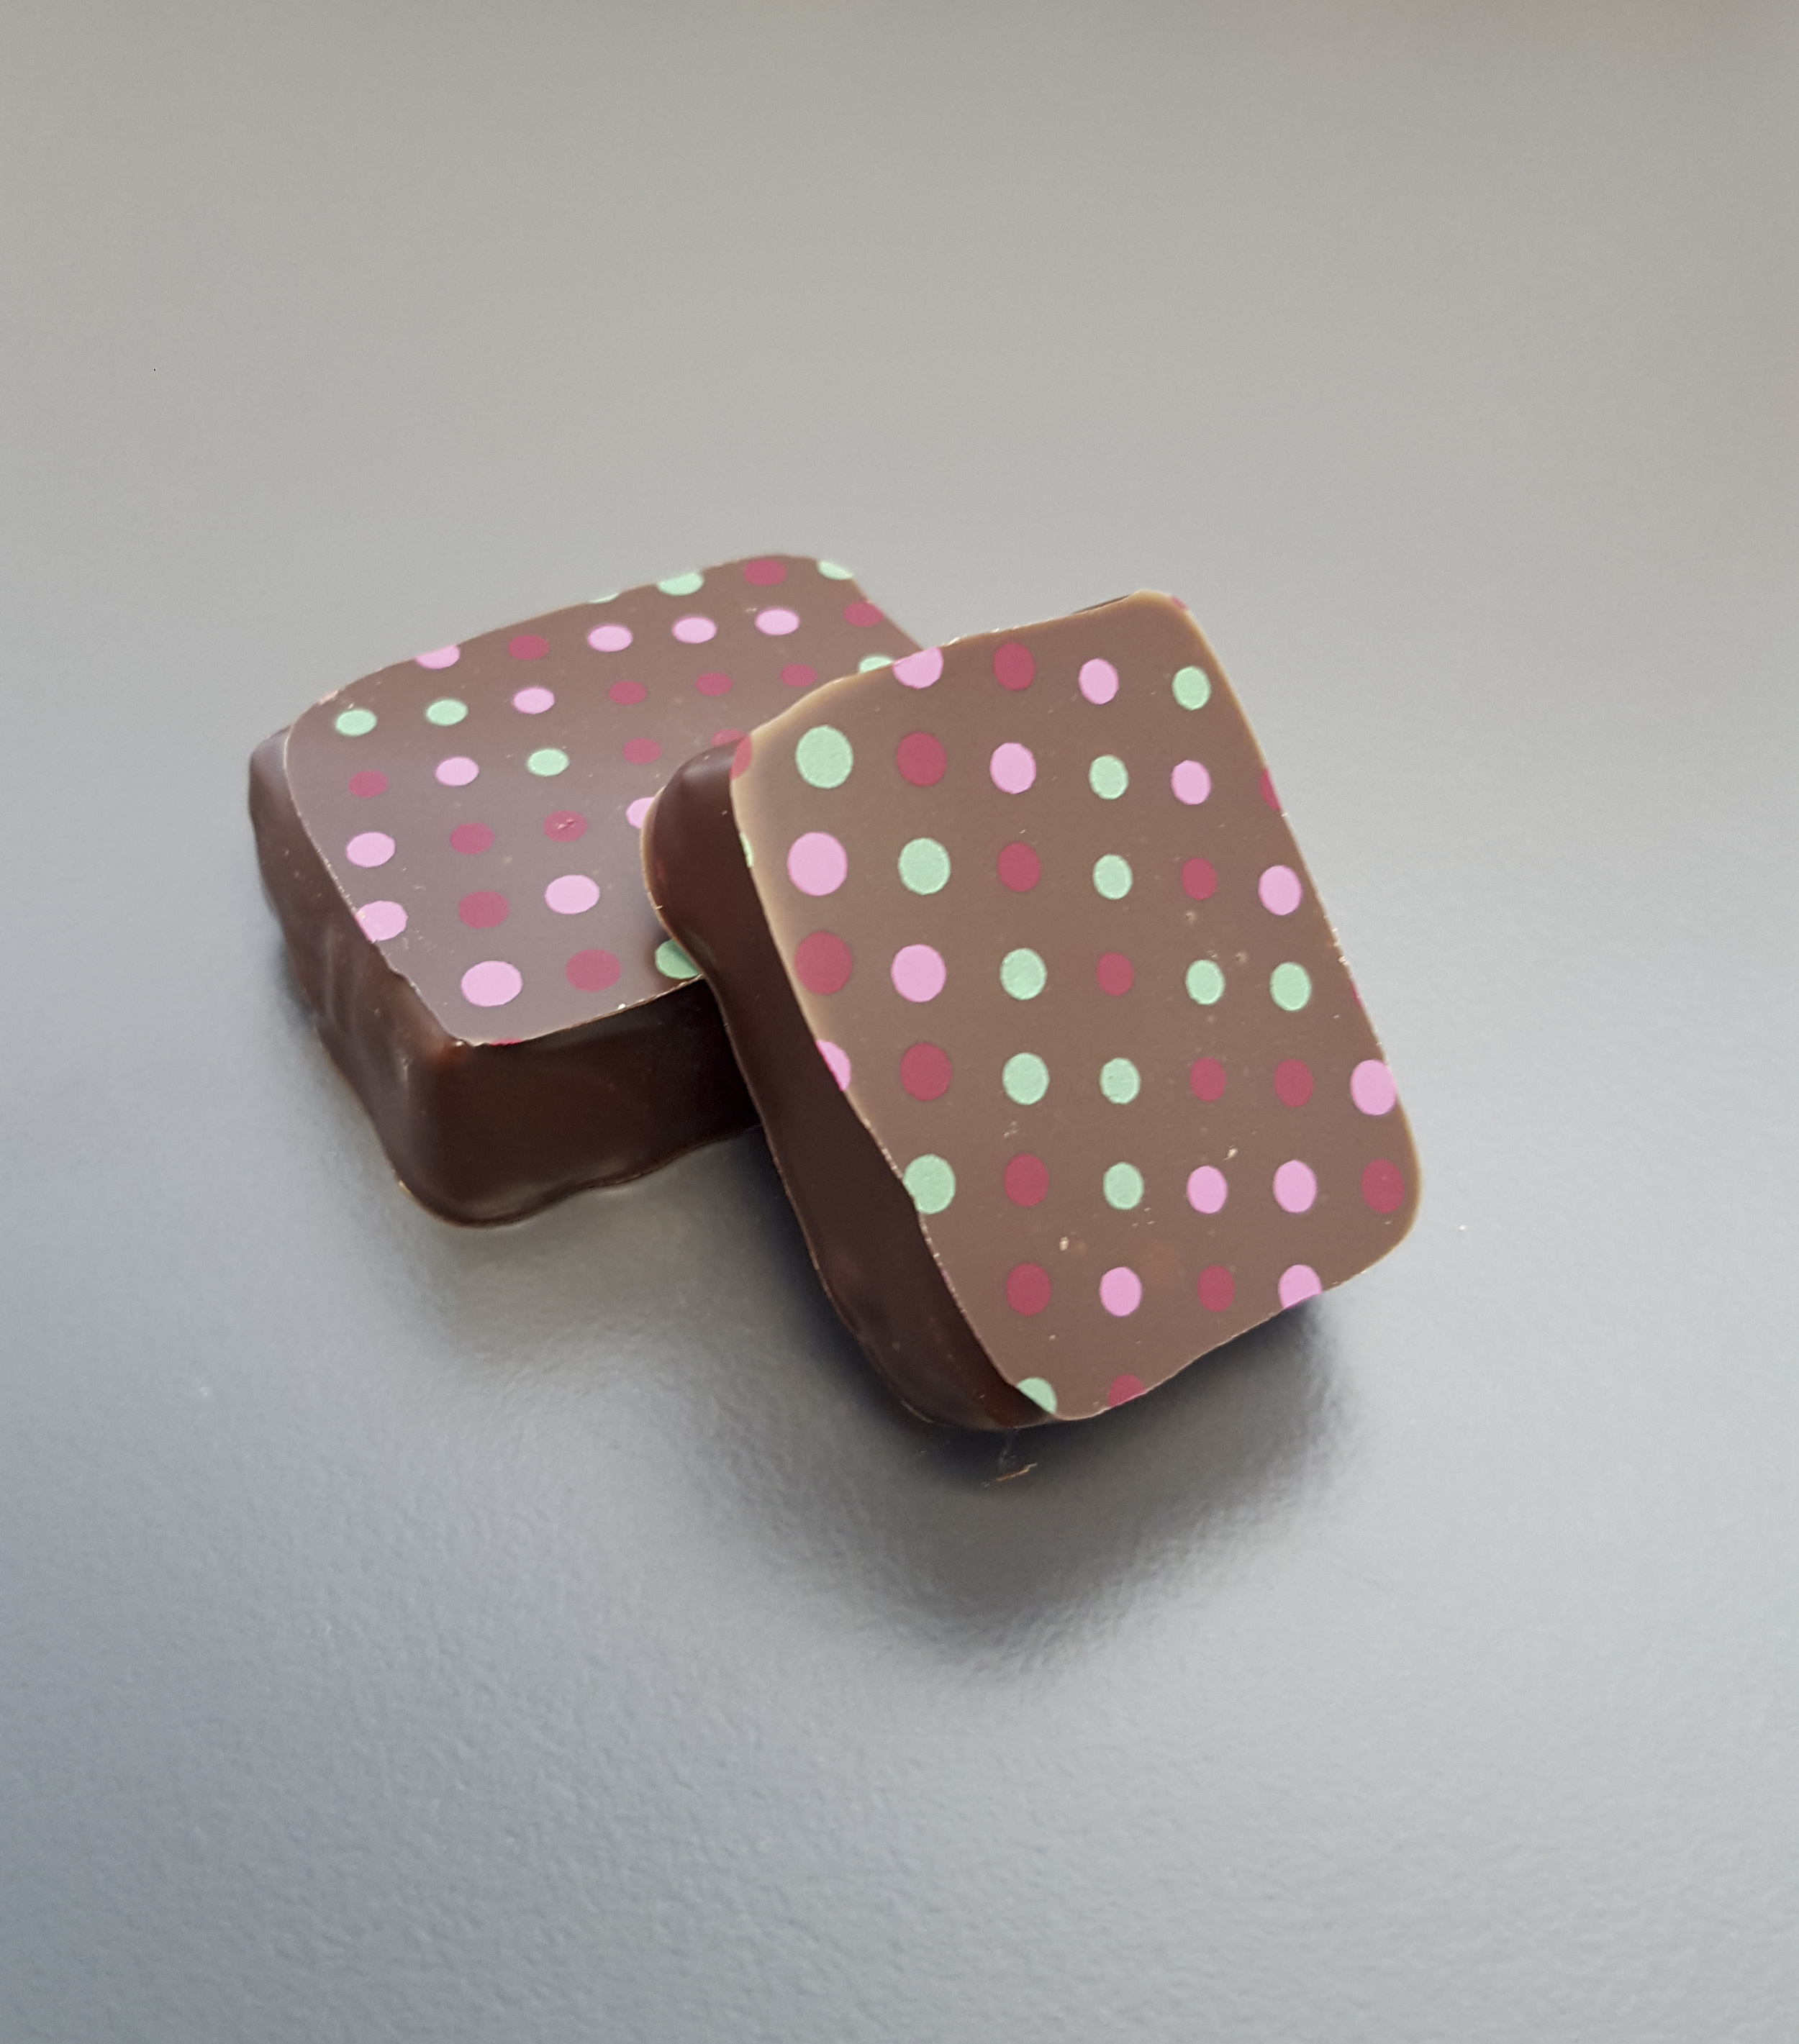 Salted Caramel  - 54% Dark chocolate combined with caramel pieces and sea salt